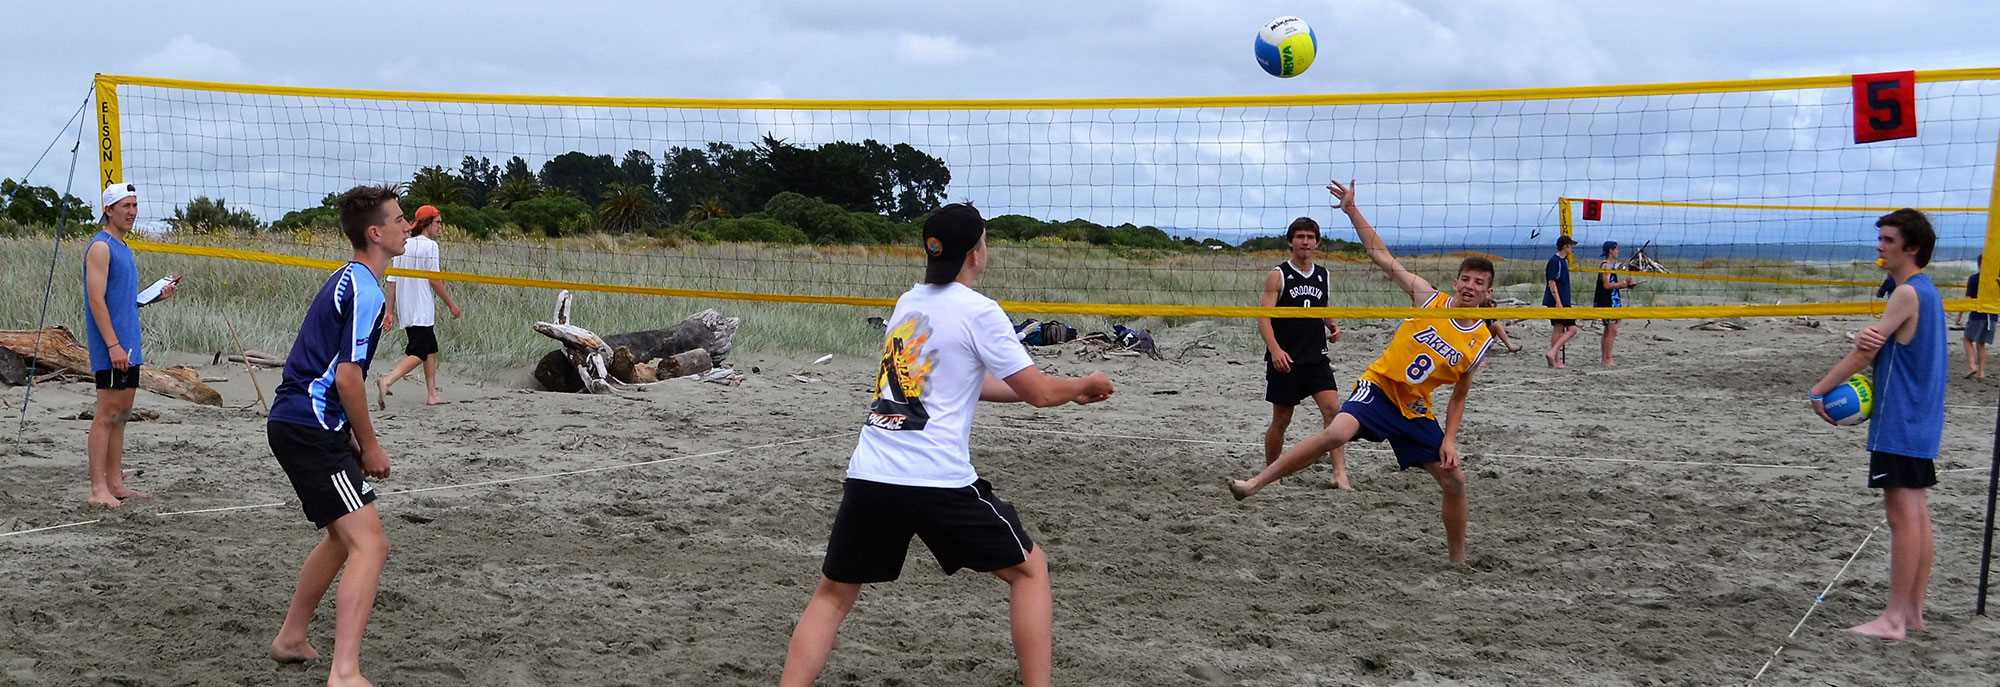 Volleyball Nelson Bays - Home